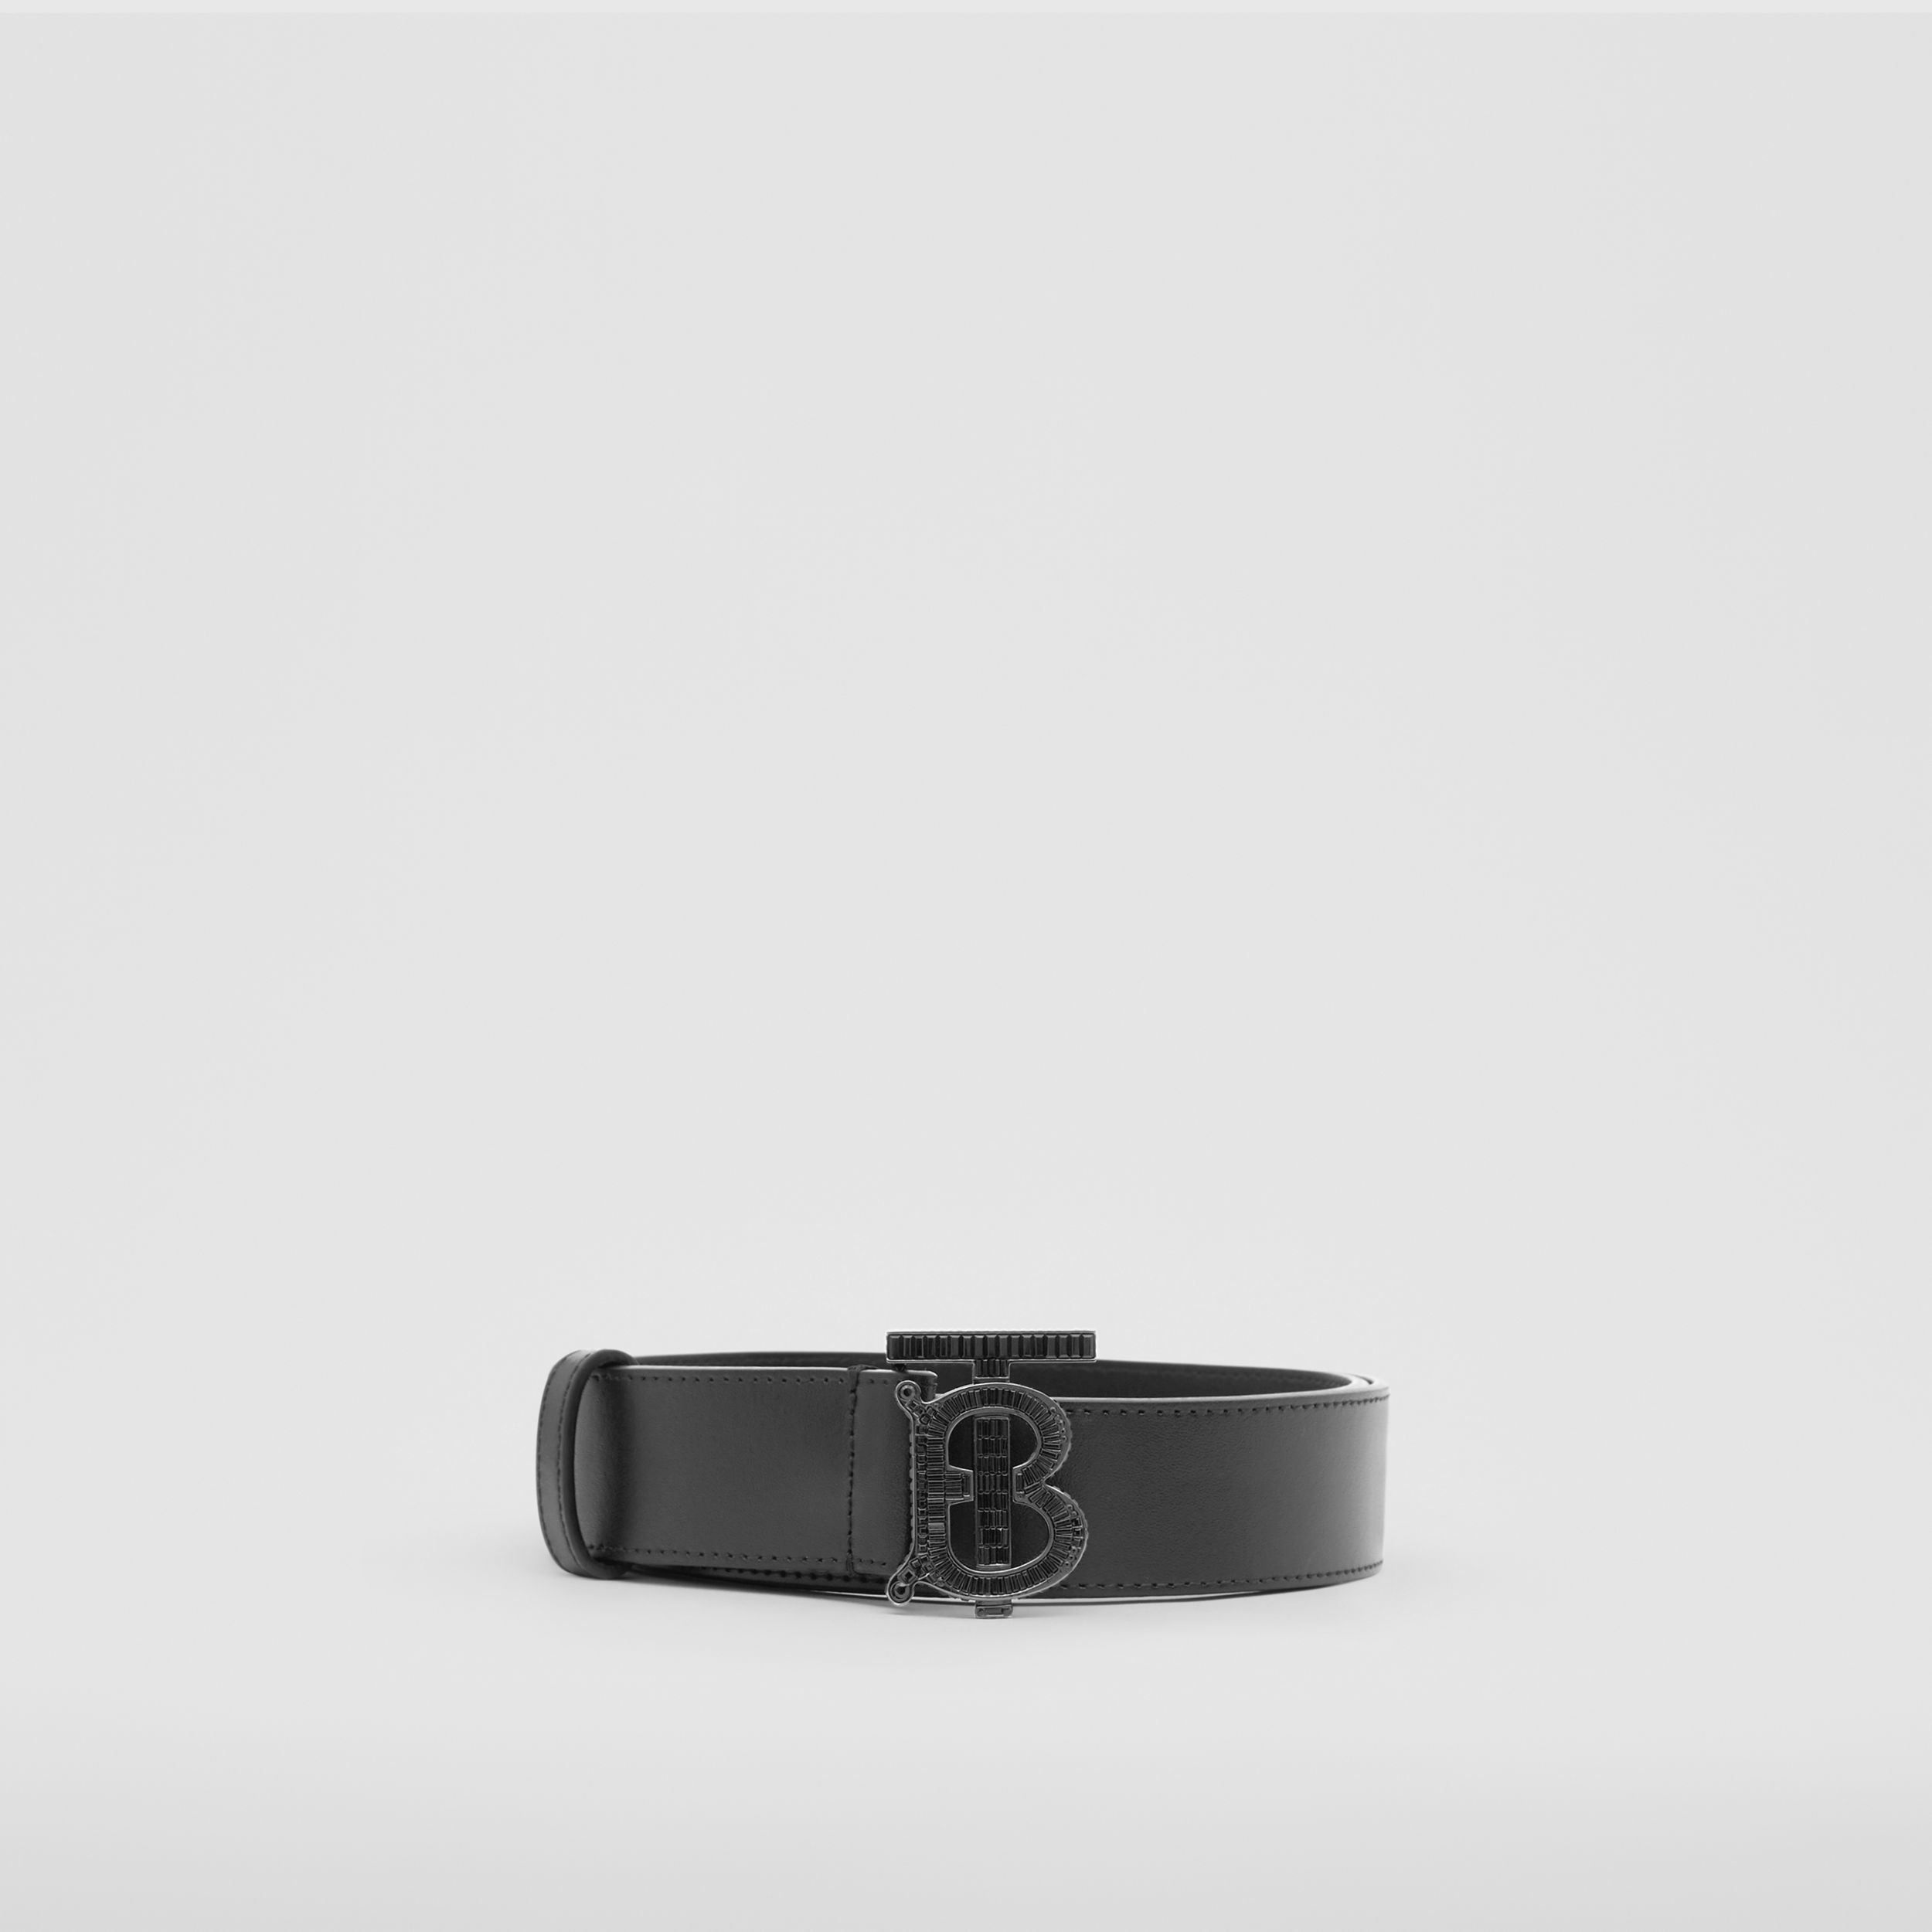 Crystal Monogram Motif Leather Belt in Black - Men | Burberry - 4